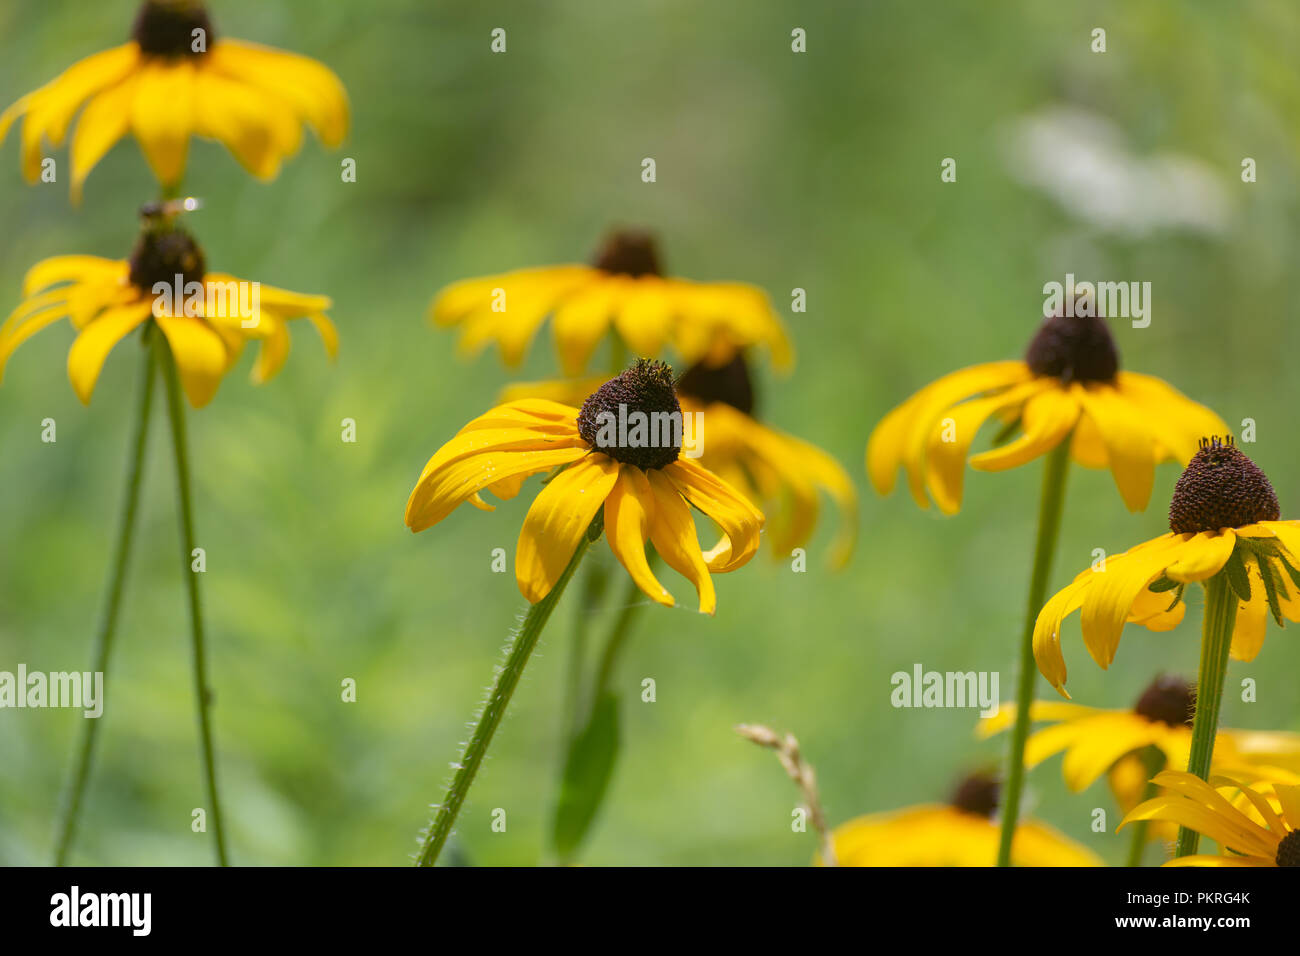 Beautiful Yellow Flowers In A Field Of Green Grass And Plants Making